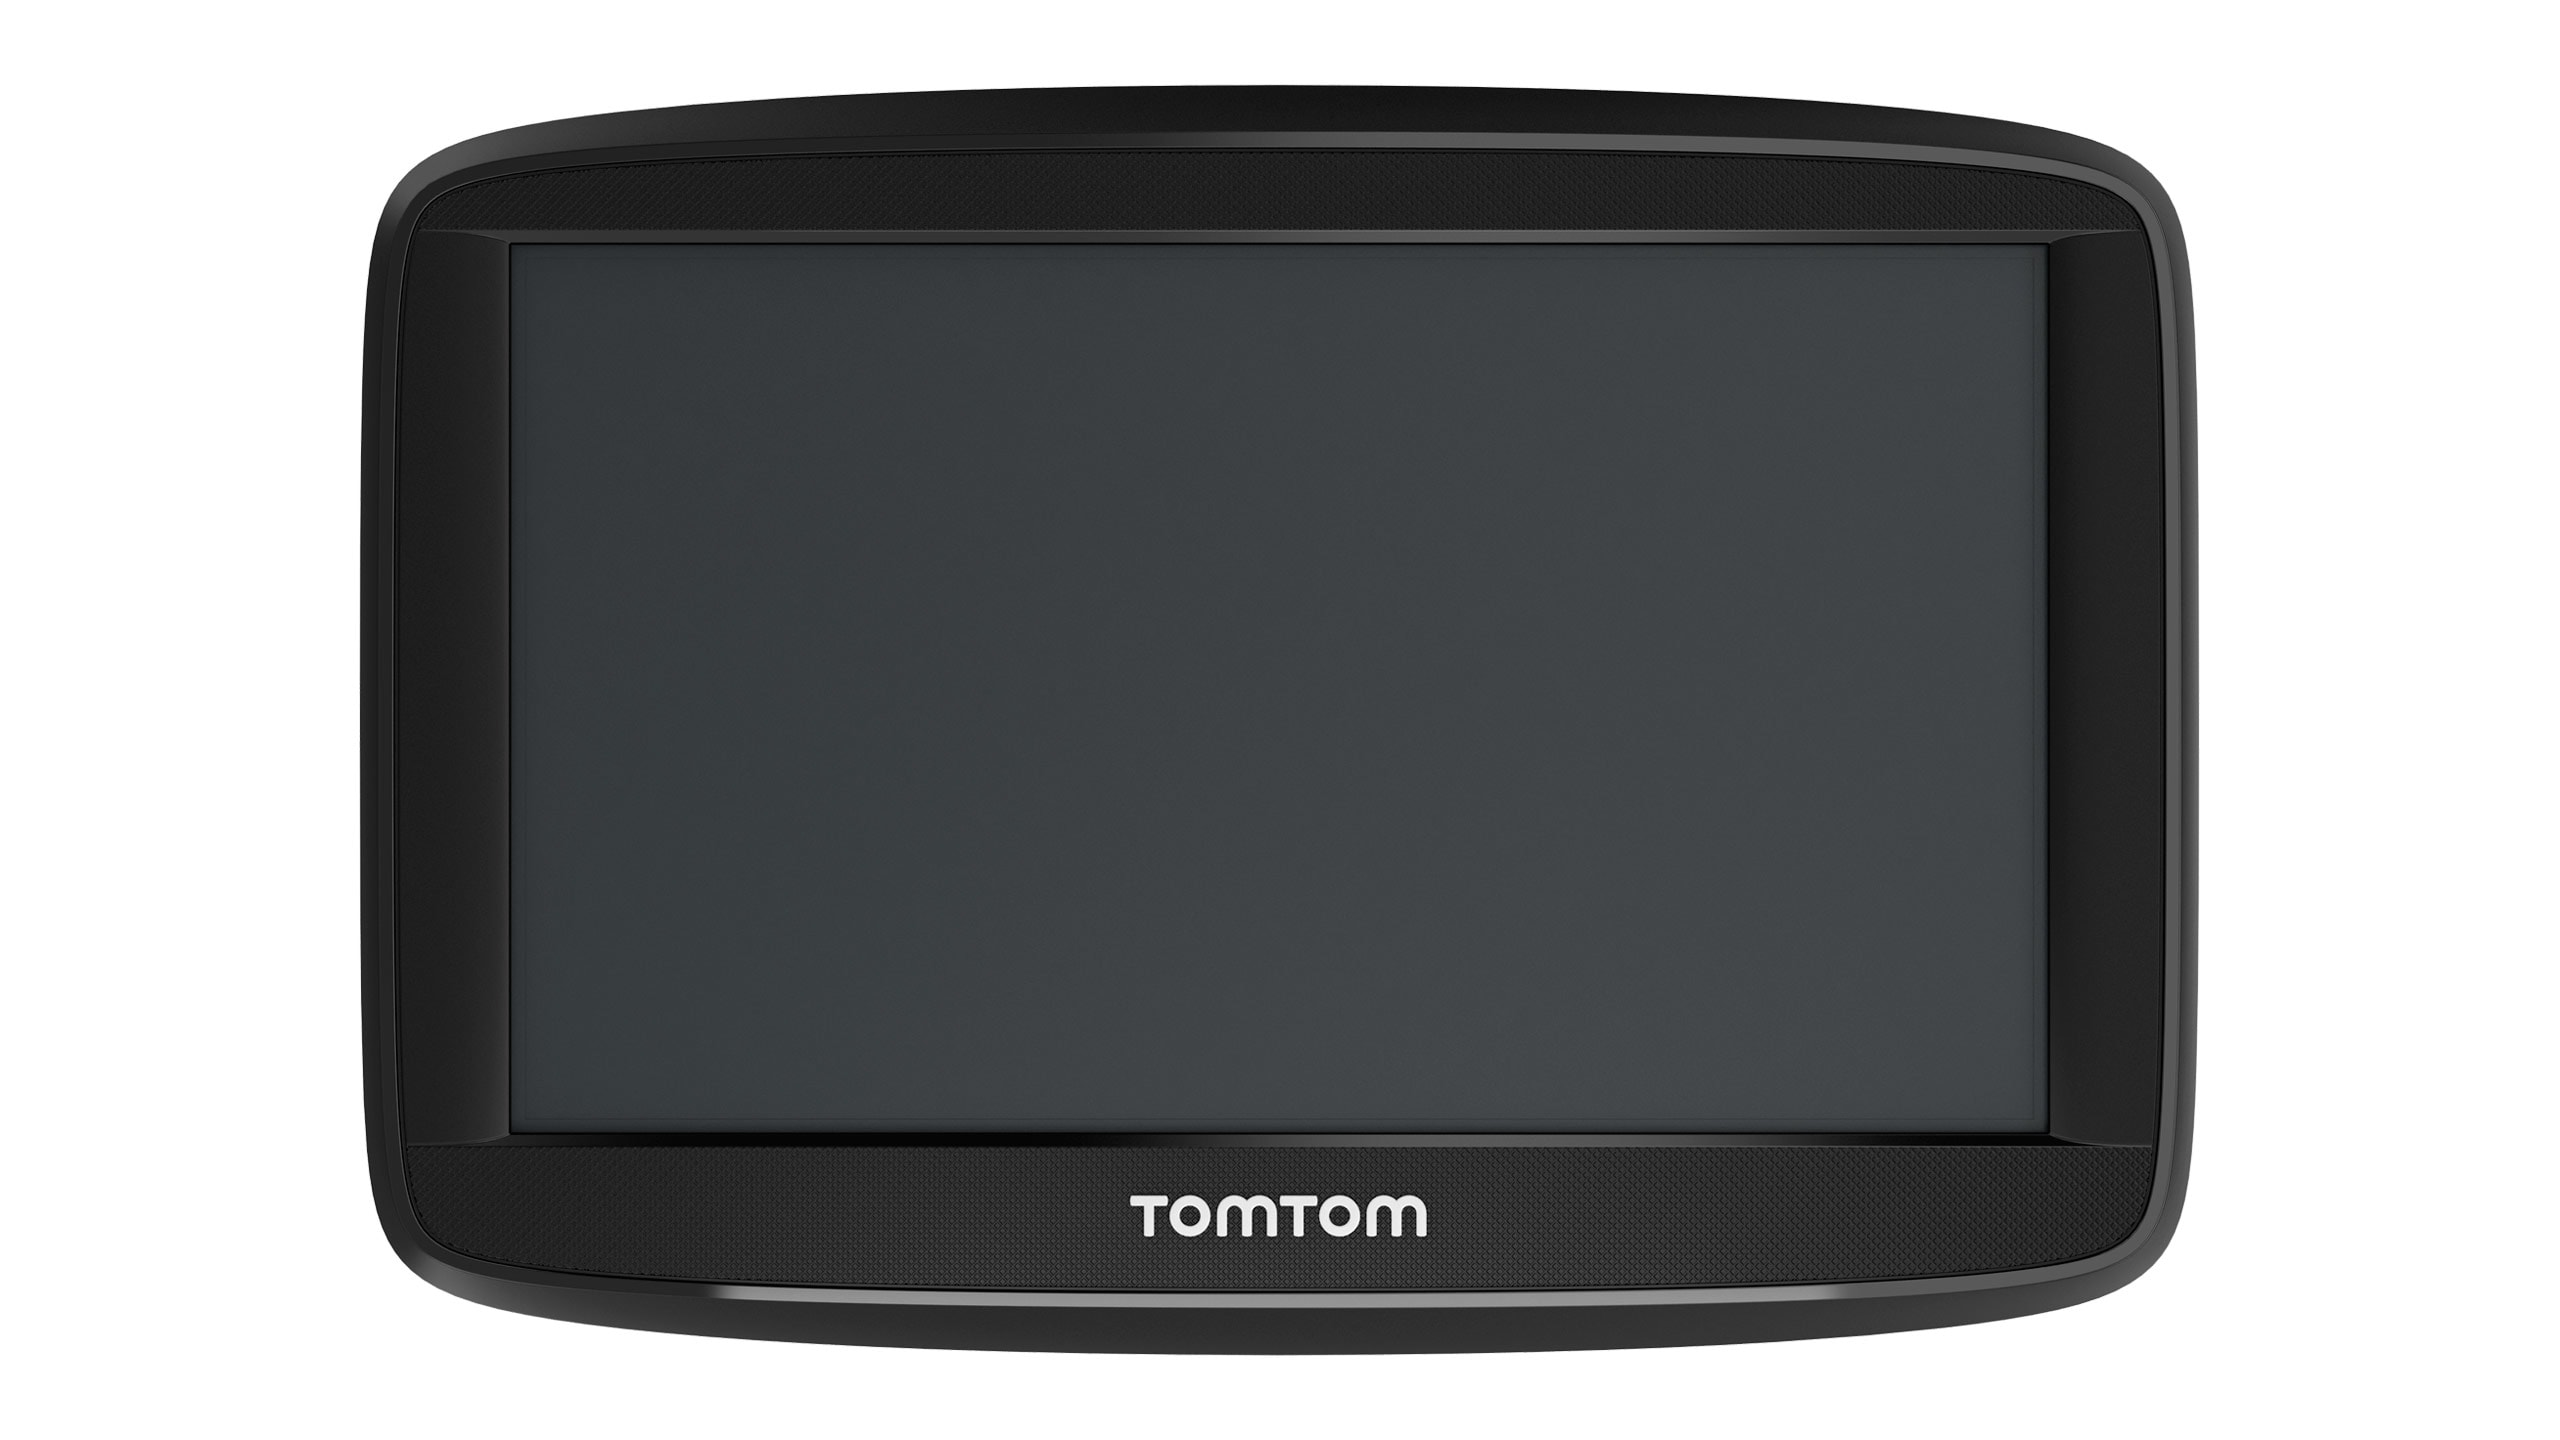 The TomTom VIA 1425M comes with Lifetime Maps to get you to your destination faster.